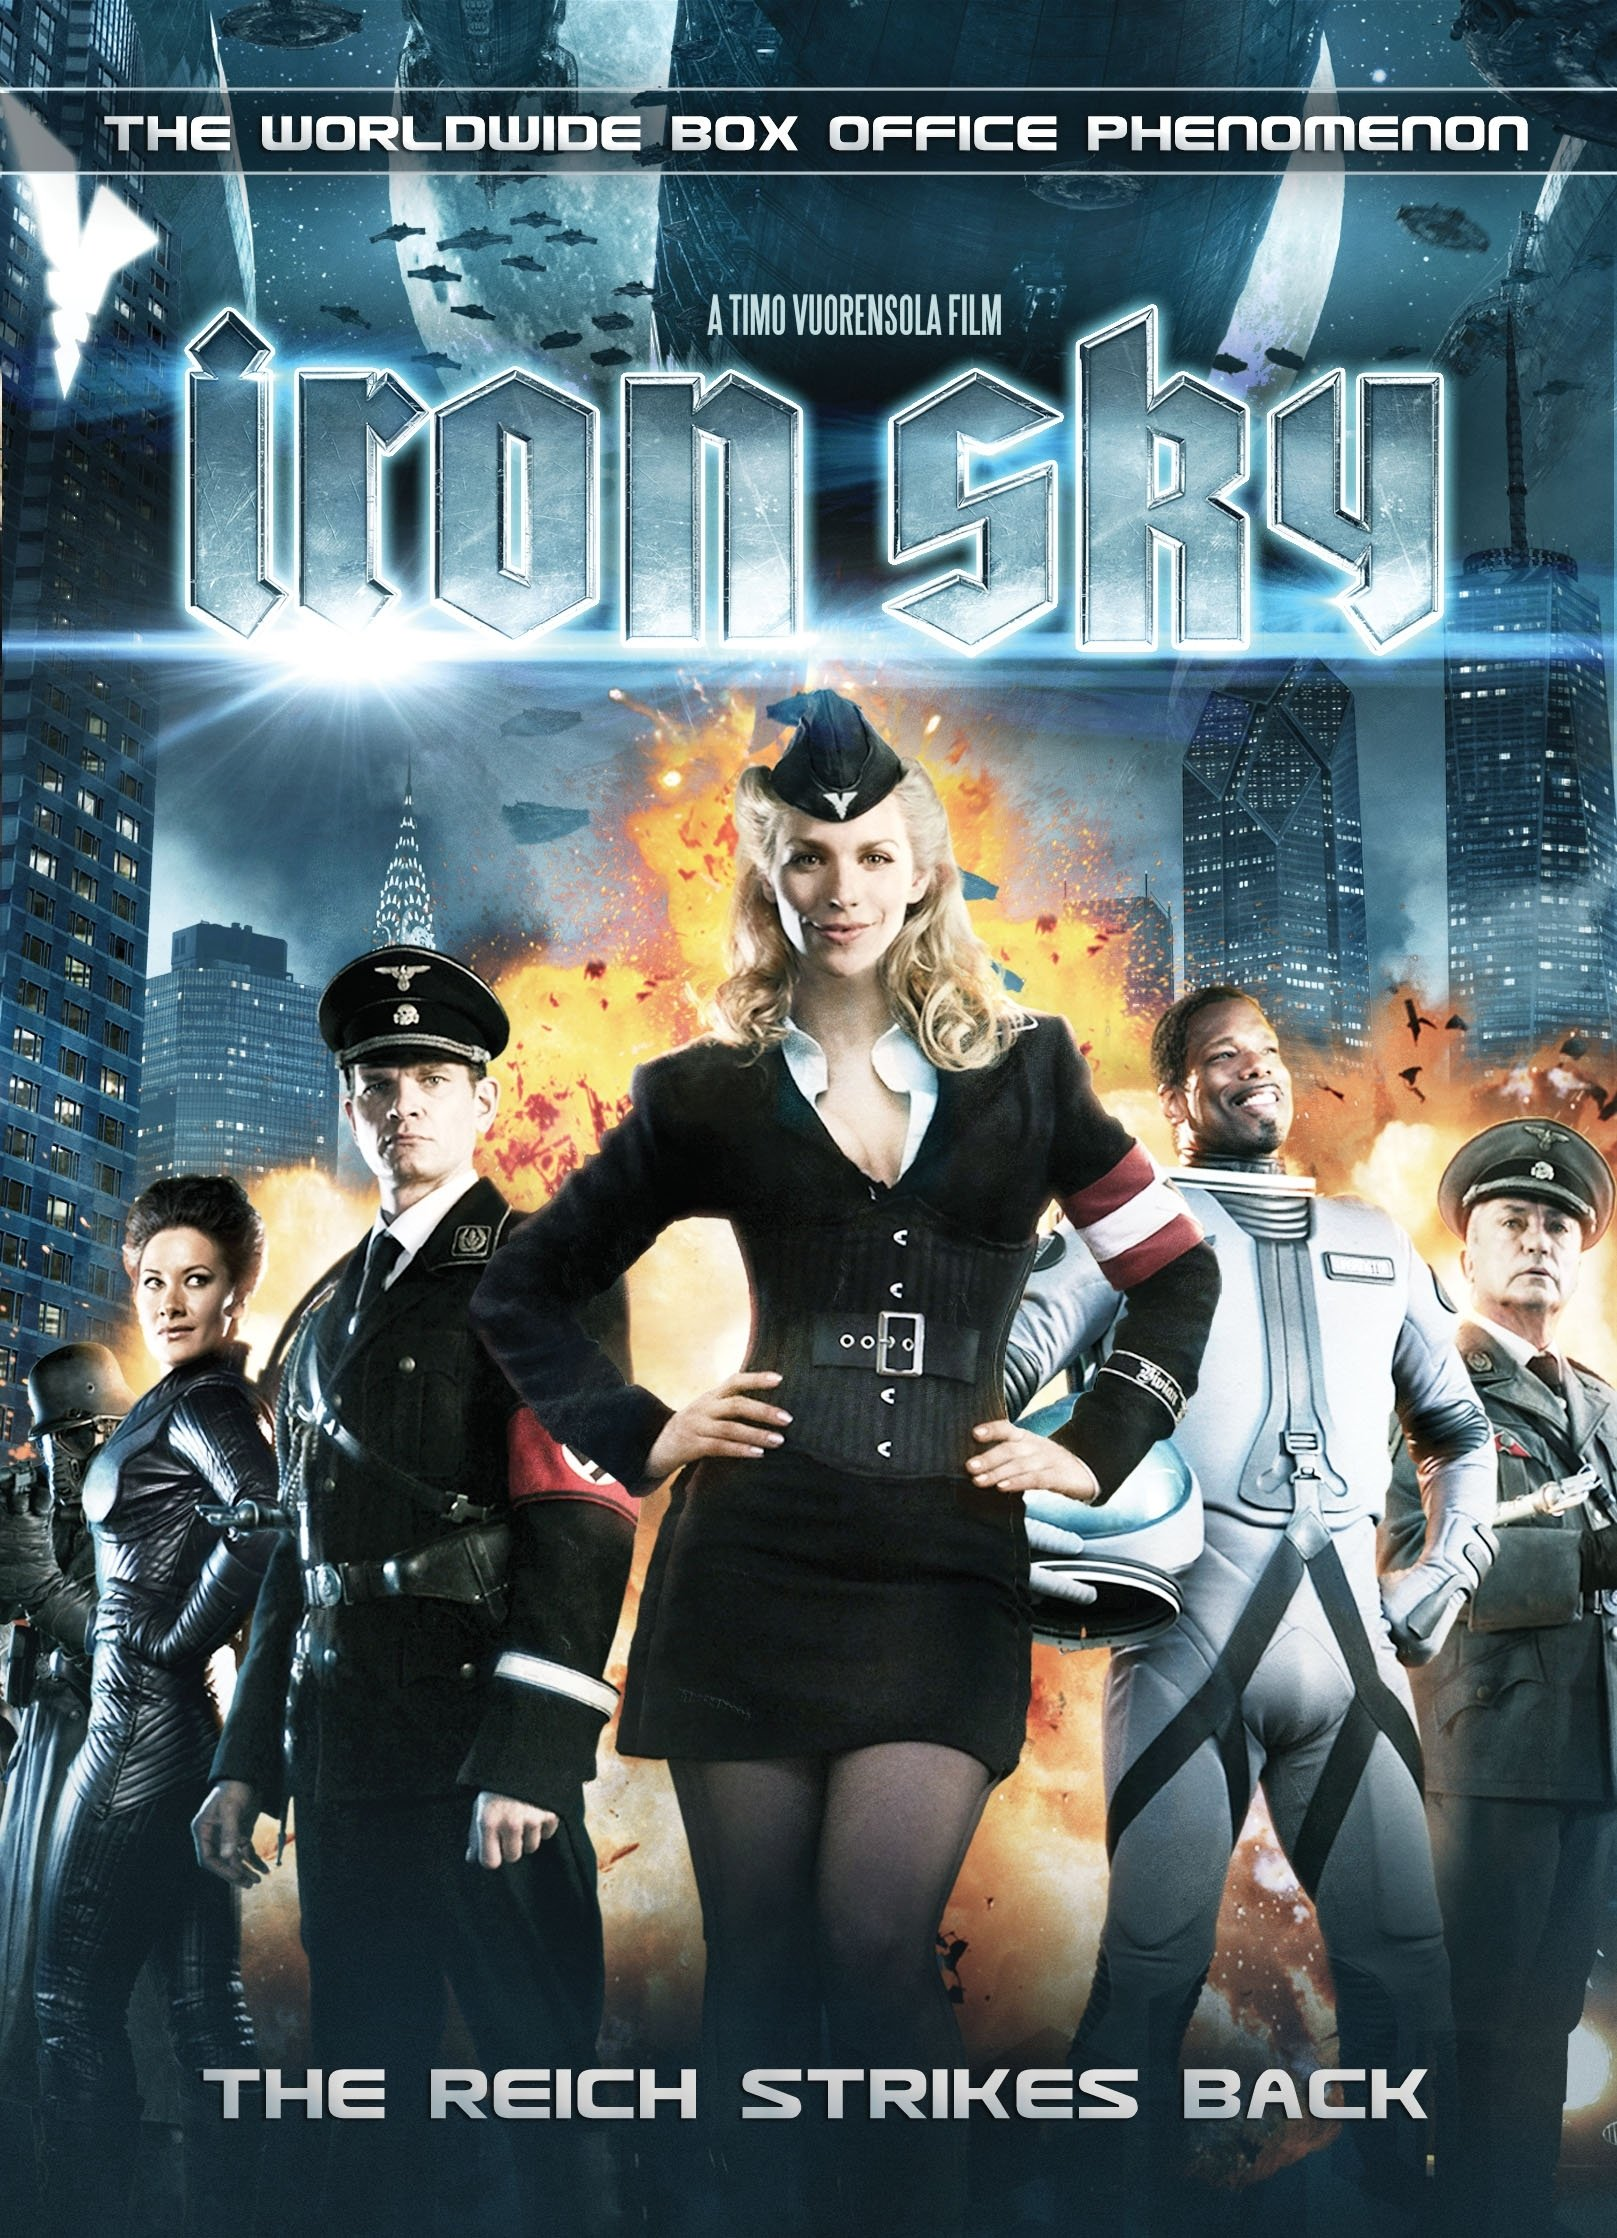 iron sky 2 full movie watch online free